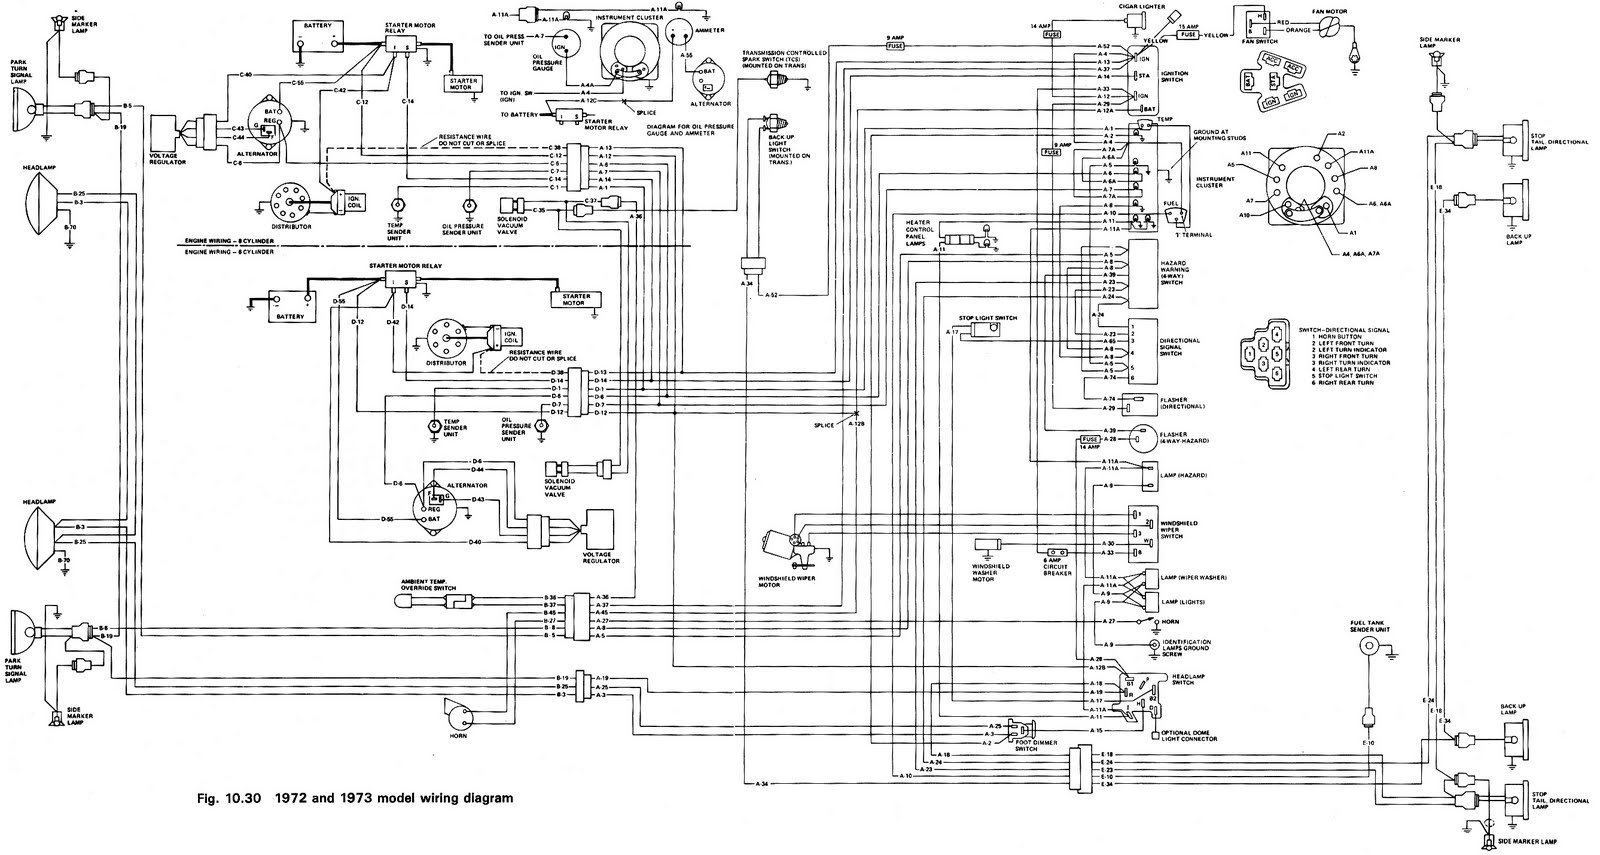 74 jeep cj5 wiring diagram 74 free engine image for user 1975 CJ5 Wiring- Diagram 1974 CJ5 Wiring-Diagram